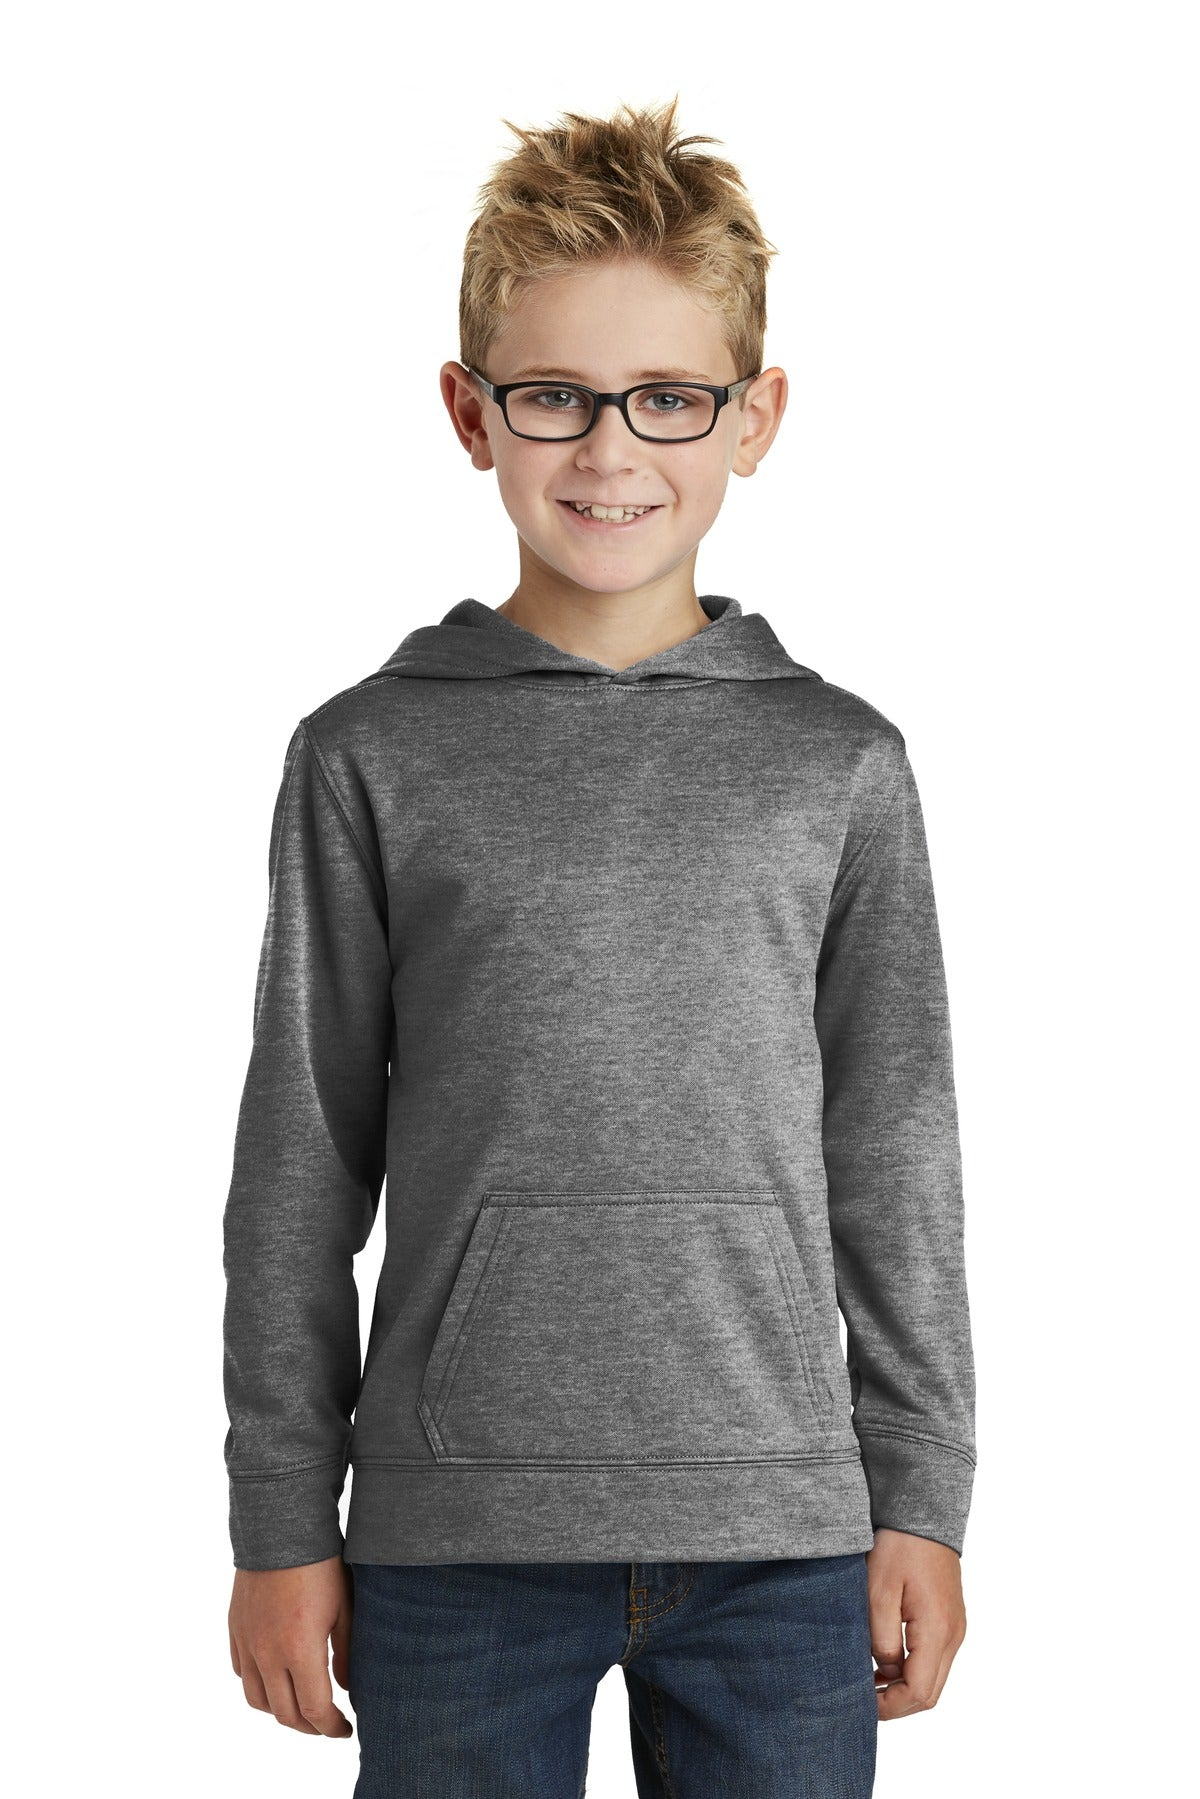 Graphite Heather Port & Company - Youth Core Fleece Pullover Hooded Sweatshirt.